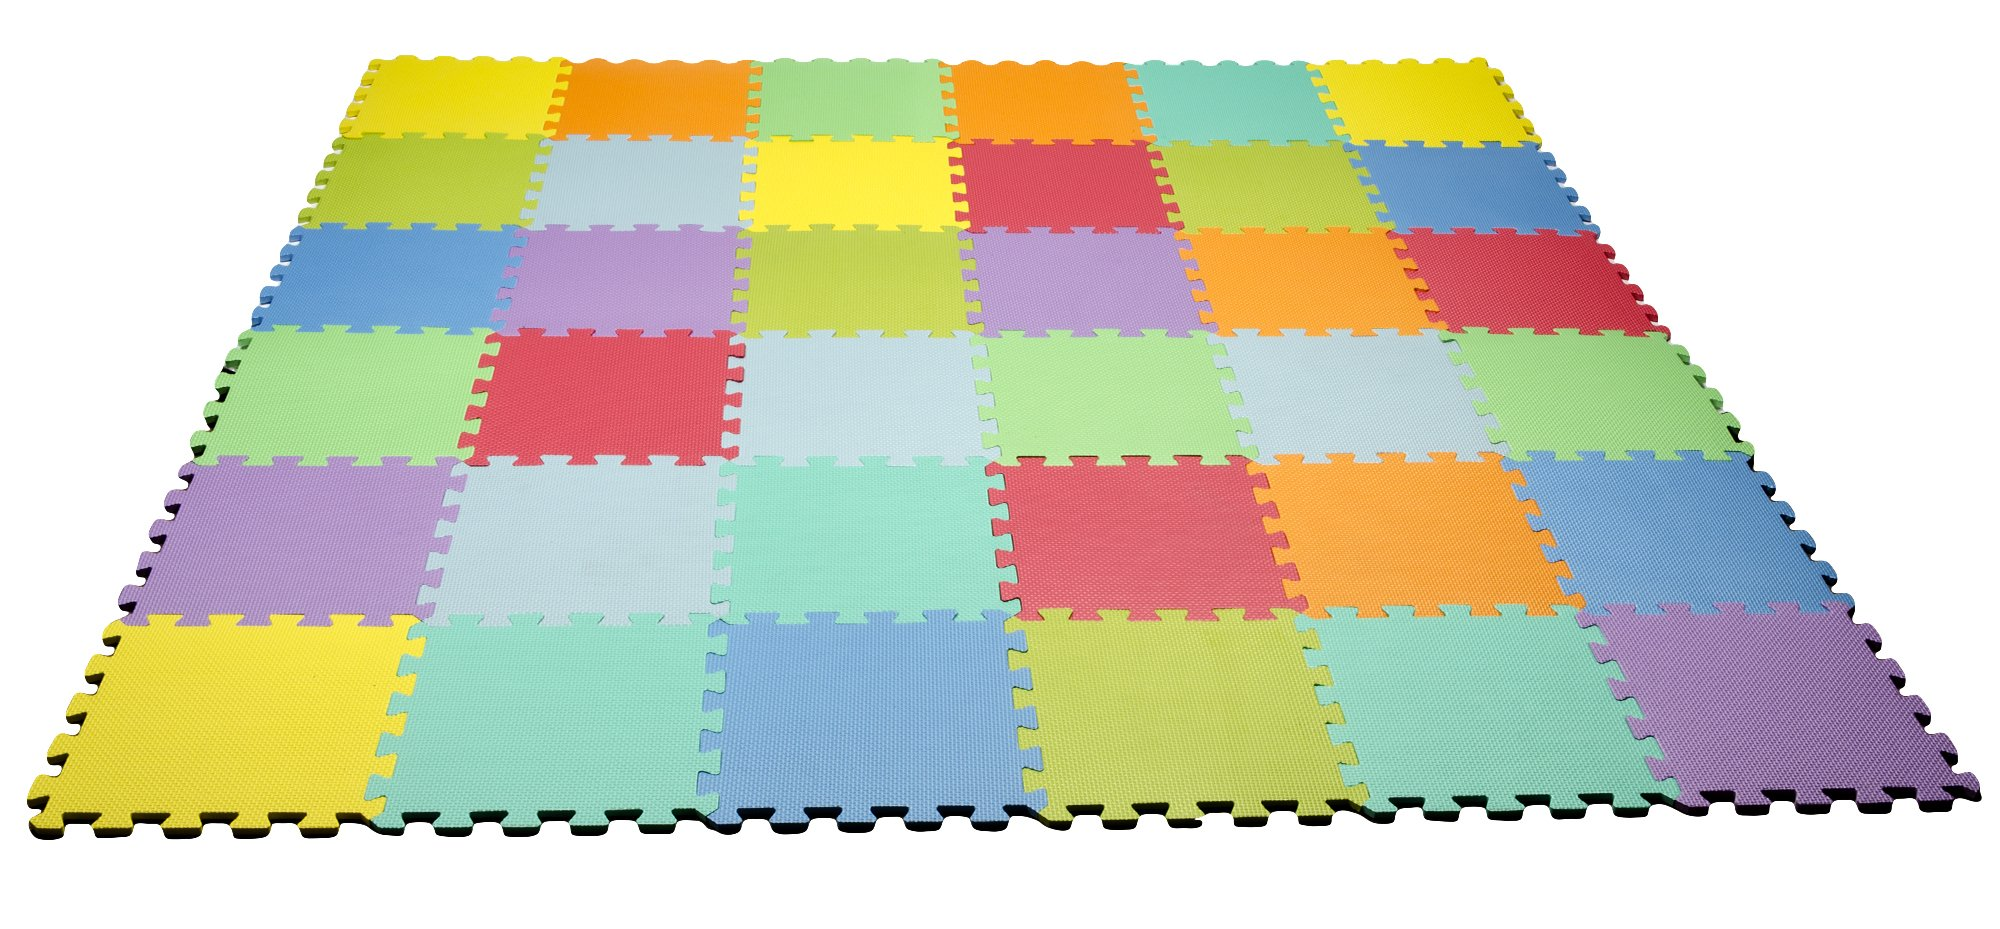 HemingWeigh Kids Multicolored Interlocking Puzzle Play Mat - 36 Tiles - Soft and Safe EVA Foam - Excellent for Day Care's, Play Rooms, Baby Rooms, and playgrounds. by HemingWeigh